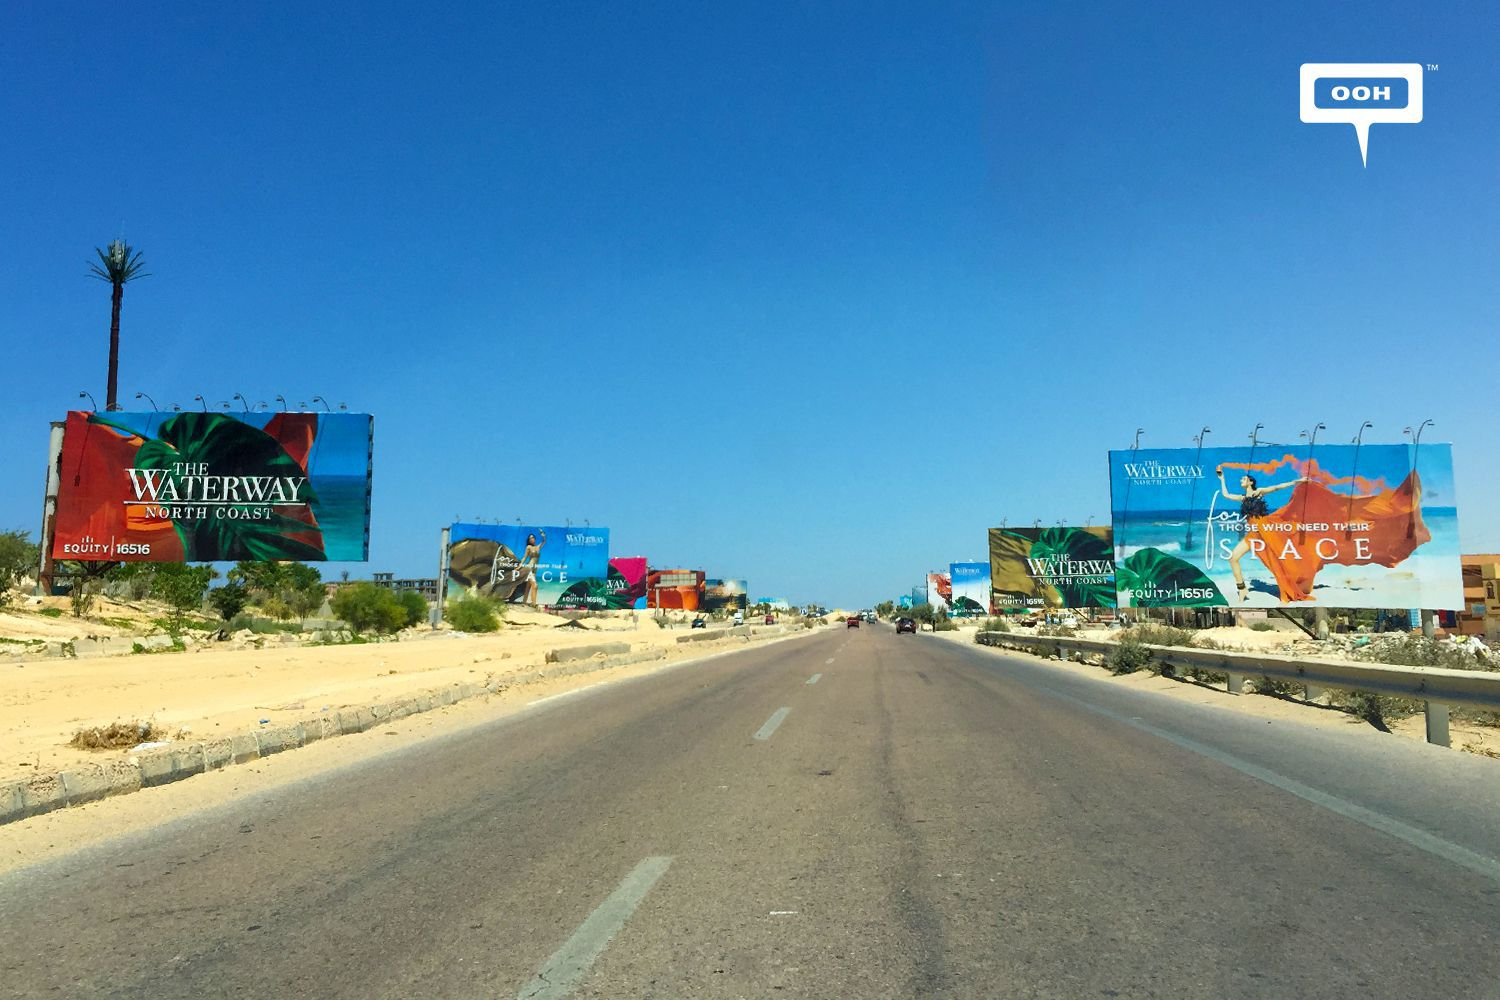 The North Coast billboards freshen our summer with several OOH campaigns-07